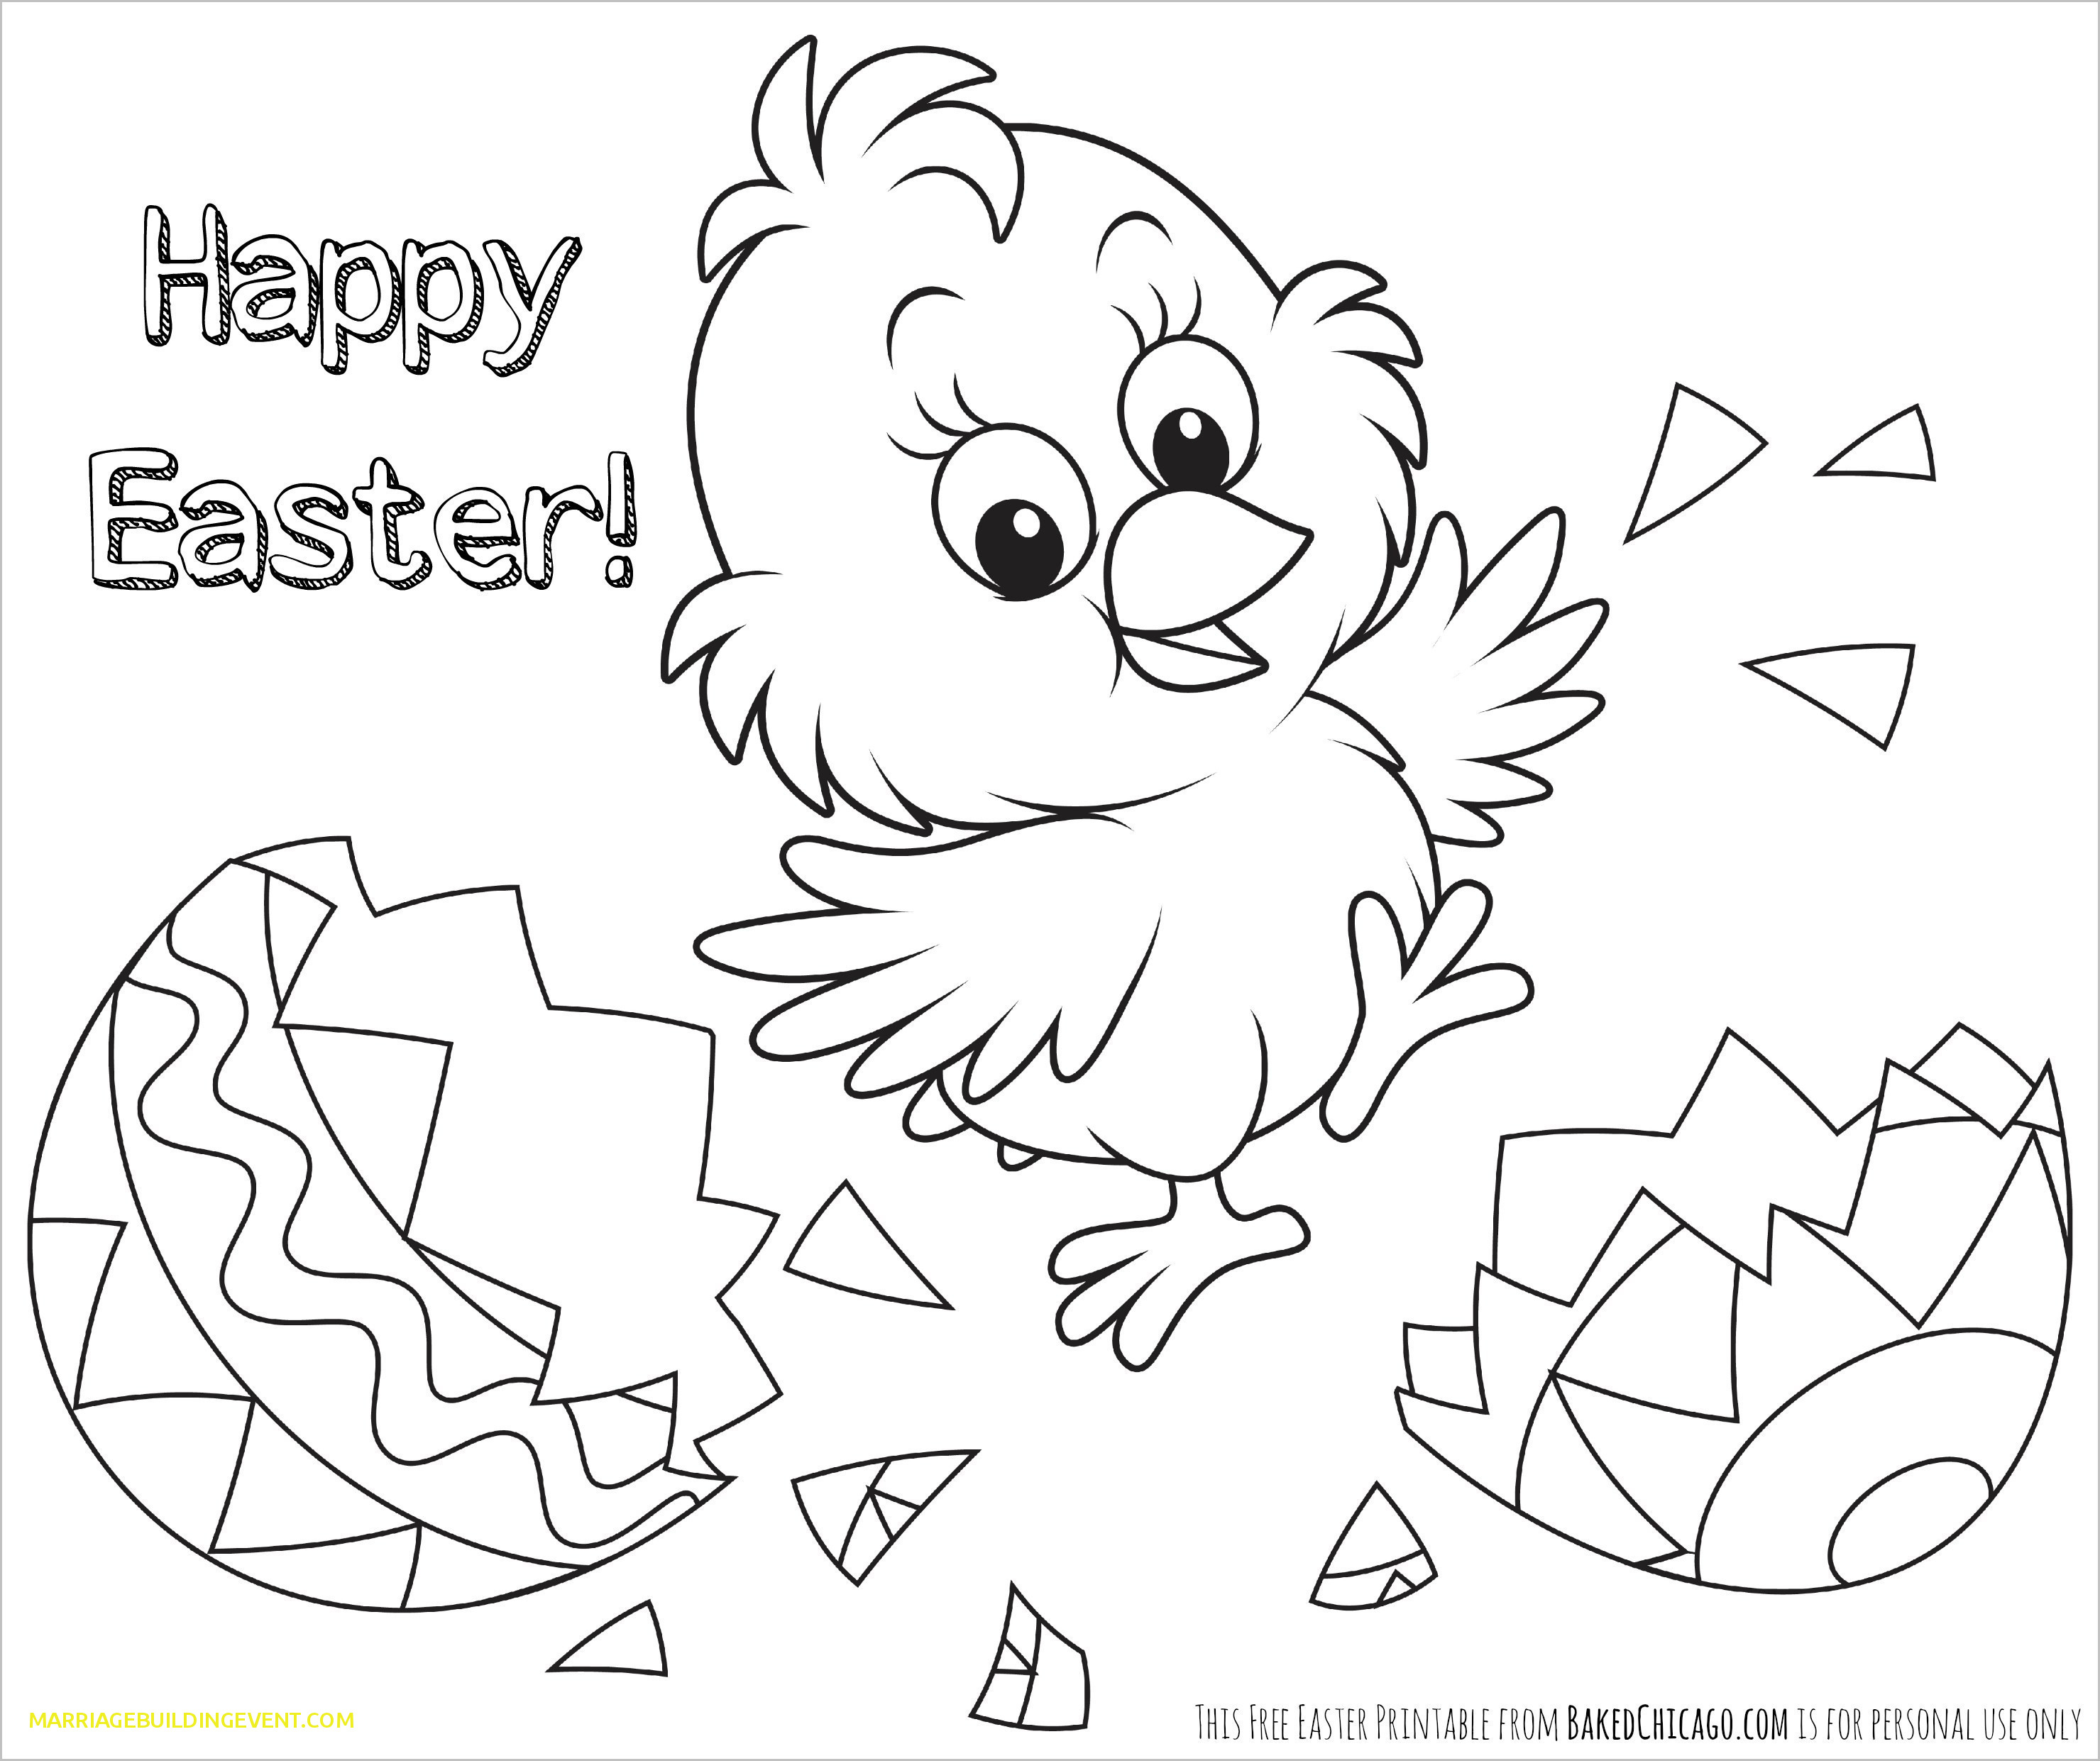 Beau Easter Coloring Pages For Kids To Print | Marriagebuildingevent - Coloring Pages Free Printable Easter